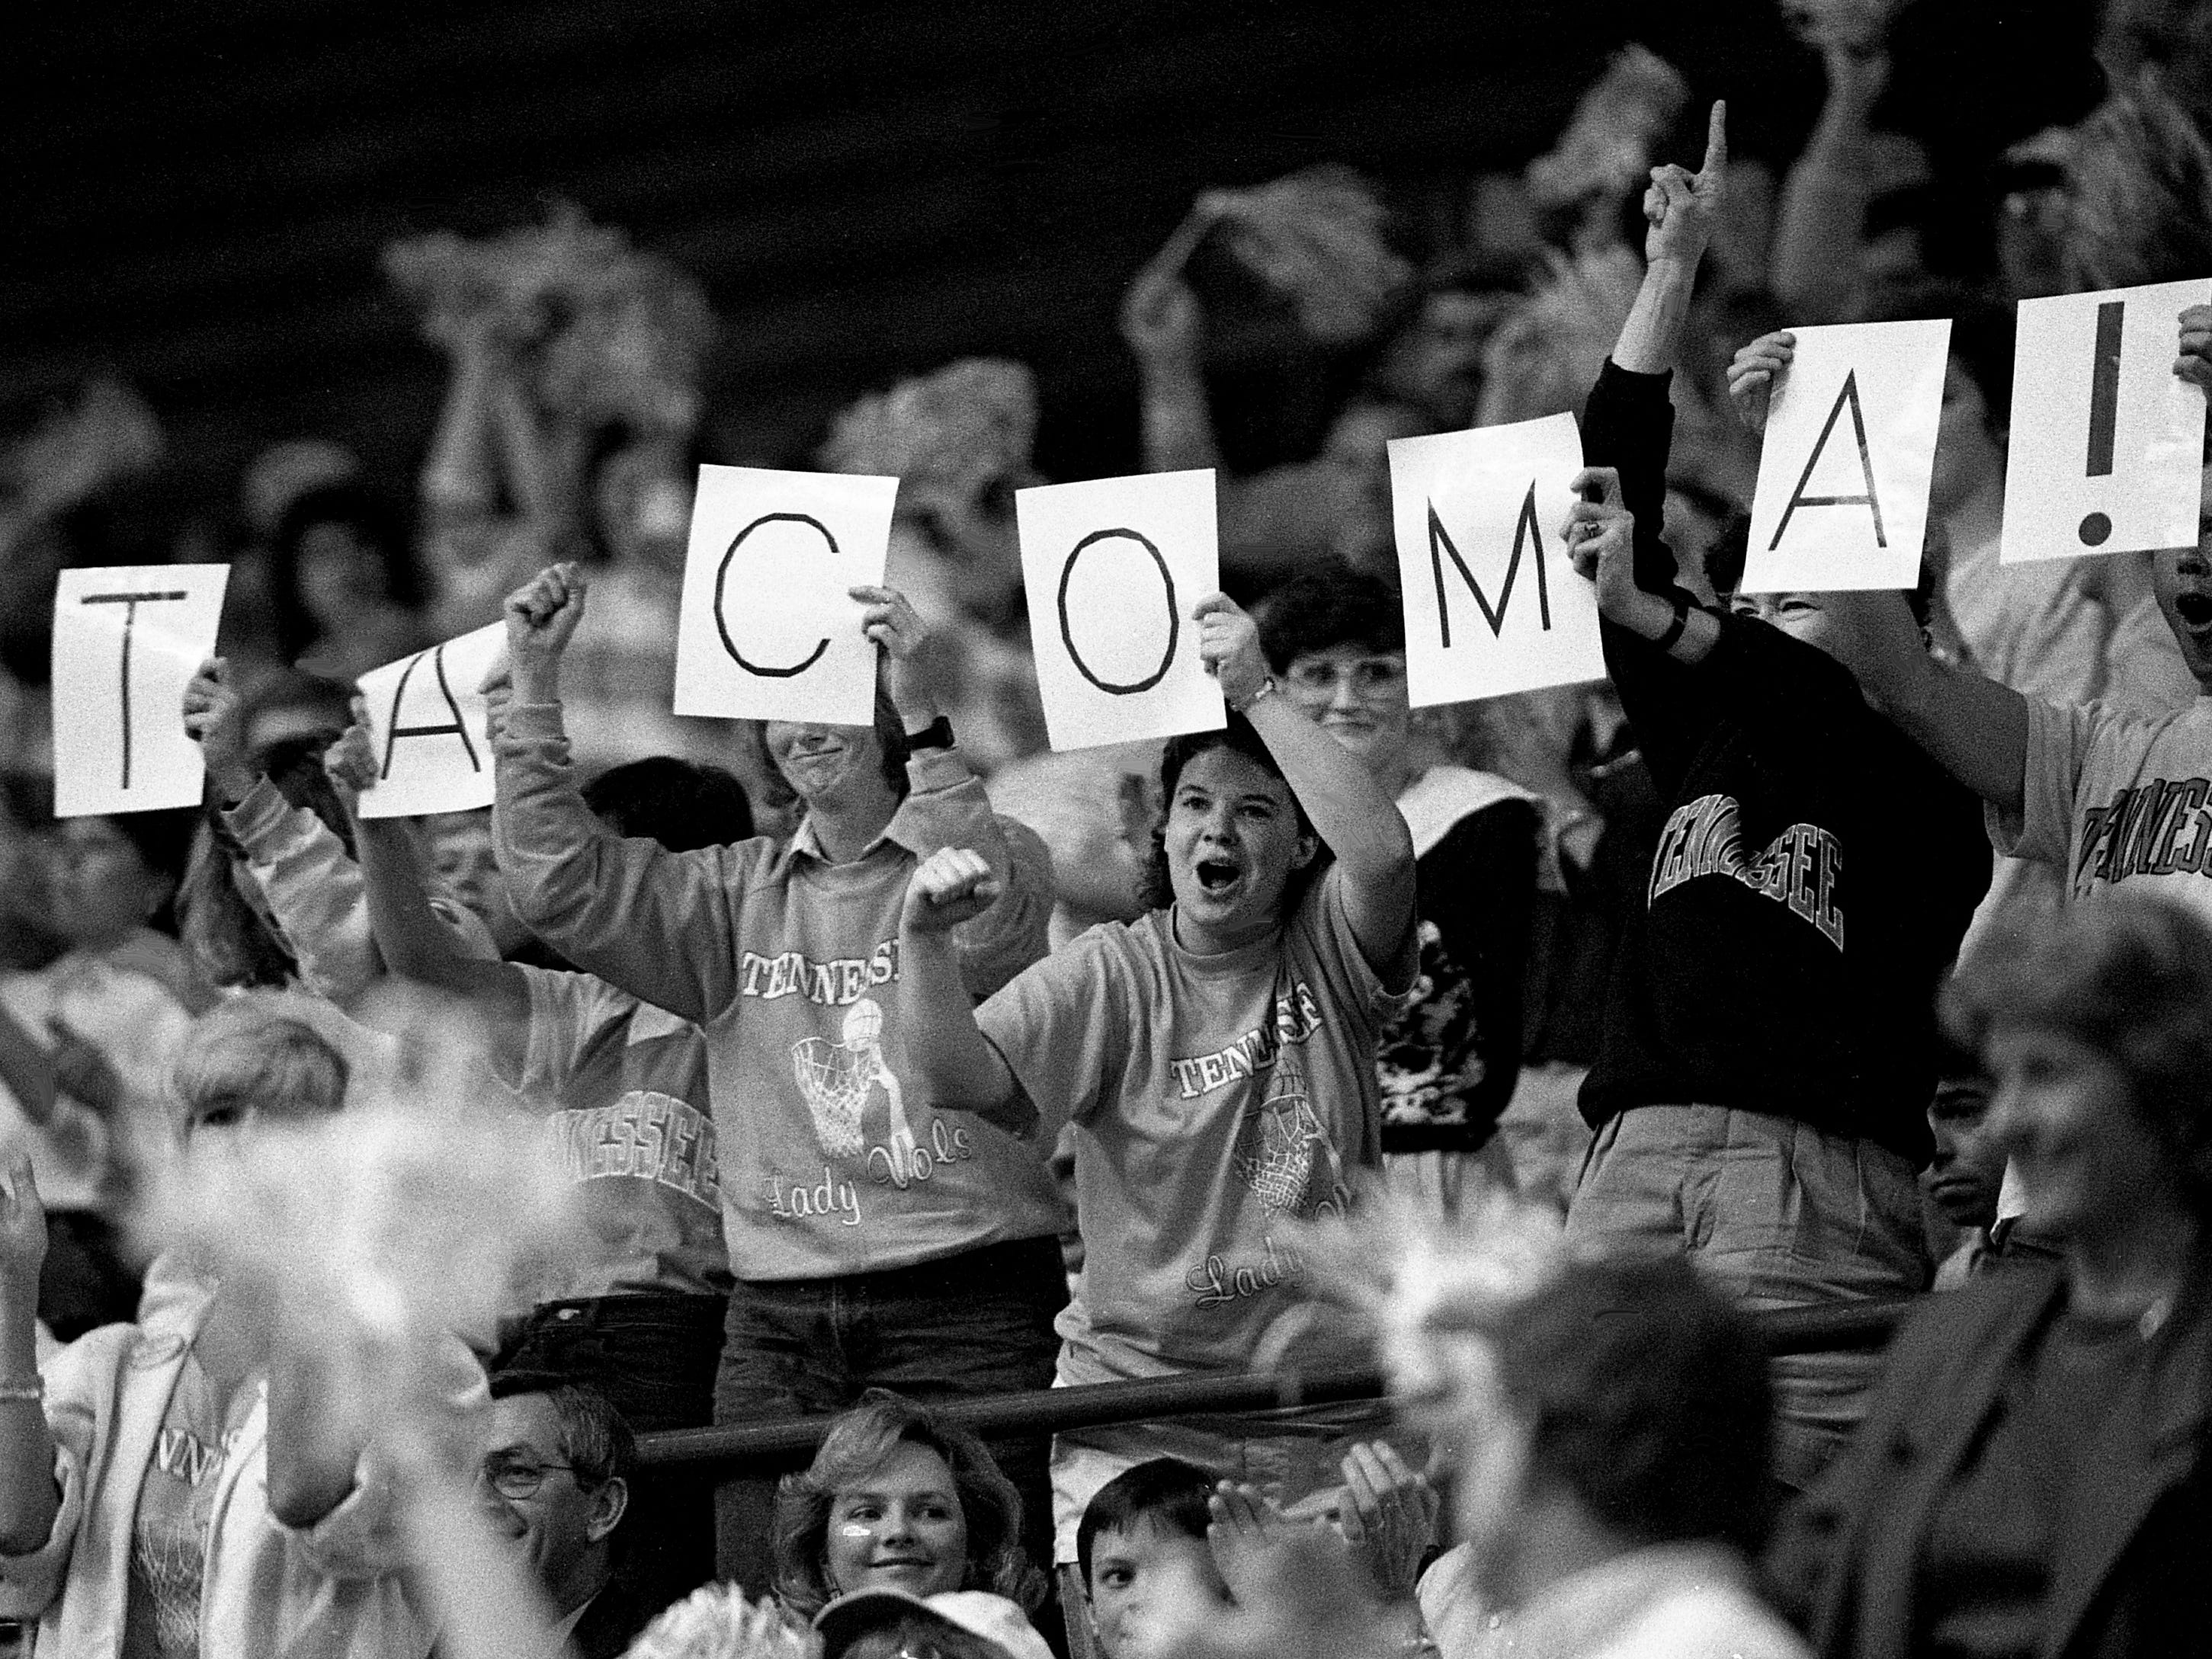 Tennessee fans at Western Kentucky's Diddle Arena on March 25, 1989, spell out the next destination for the Lady Vols, the Final Four in Tacoma, Washington, after their 94-80 victory over Long Beach State in the NCAA East Regional championship game.